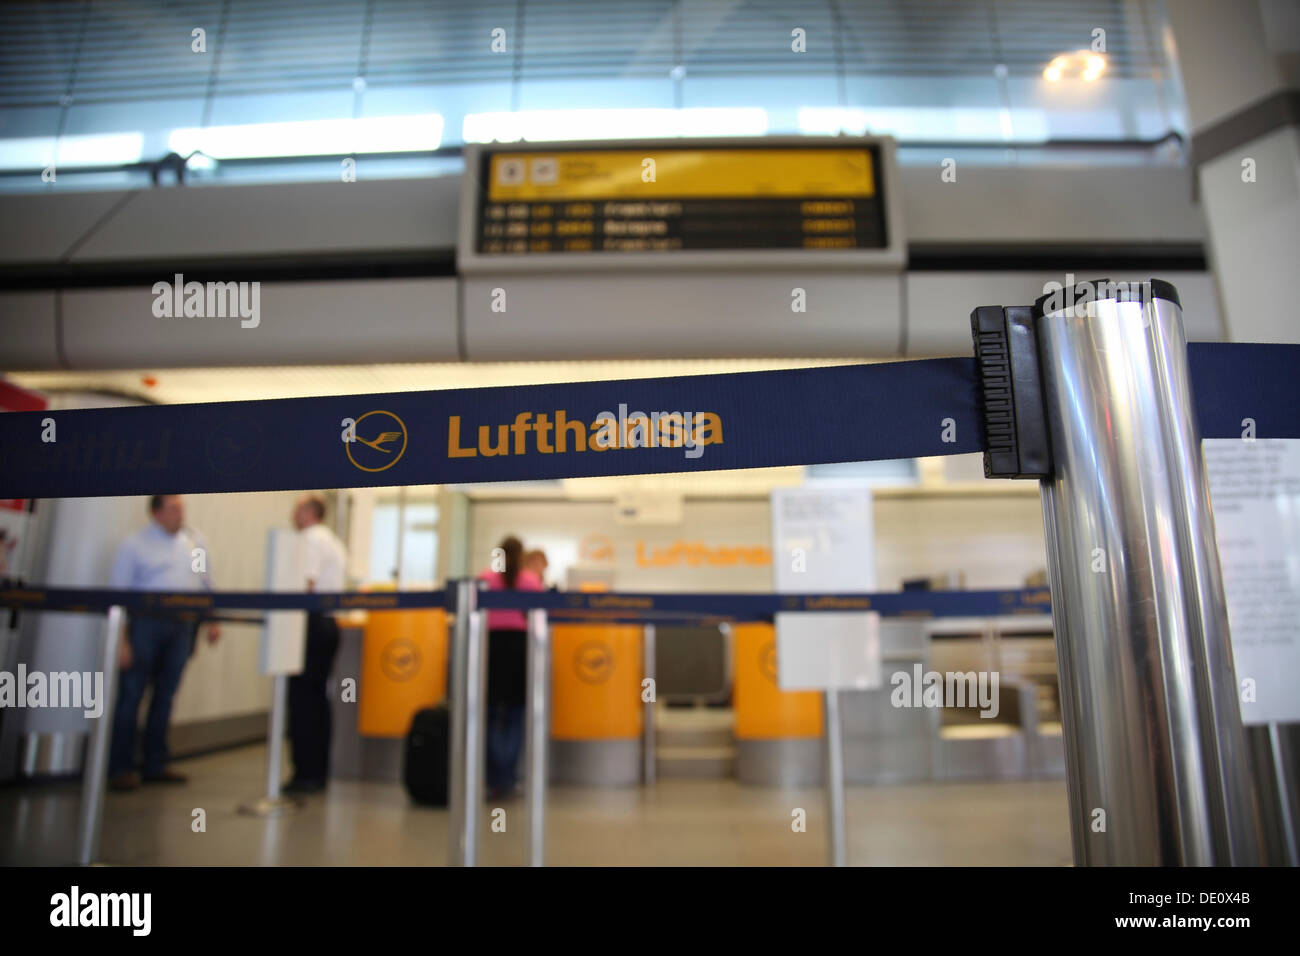 Delays and canceled flights due to the strike of the Lufthansa flight attendants, Berlin Tegel Airport, Berlin - Stock Image